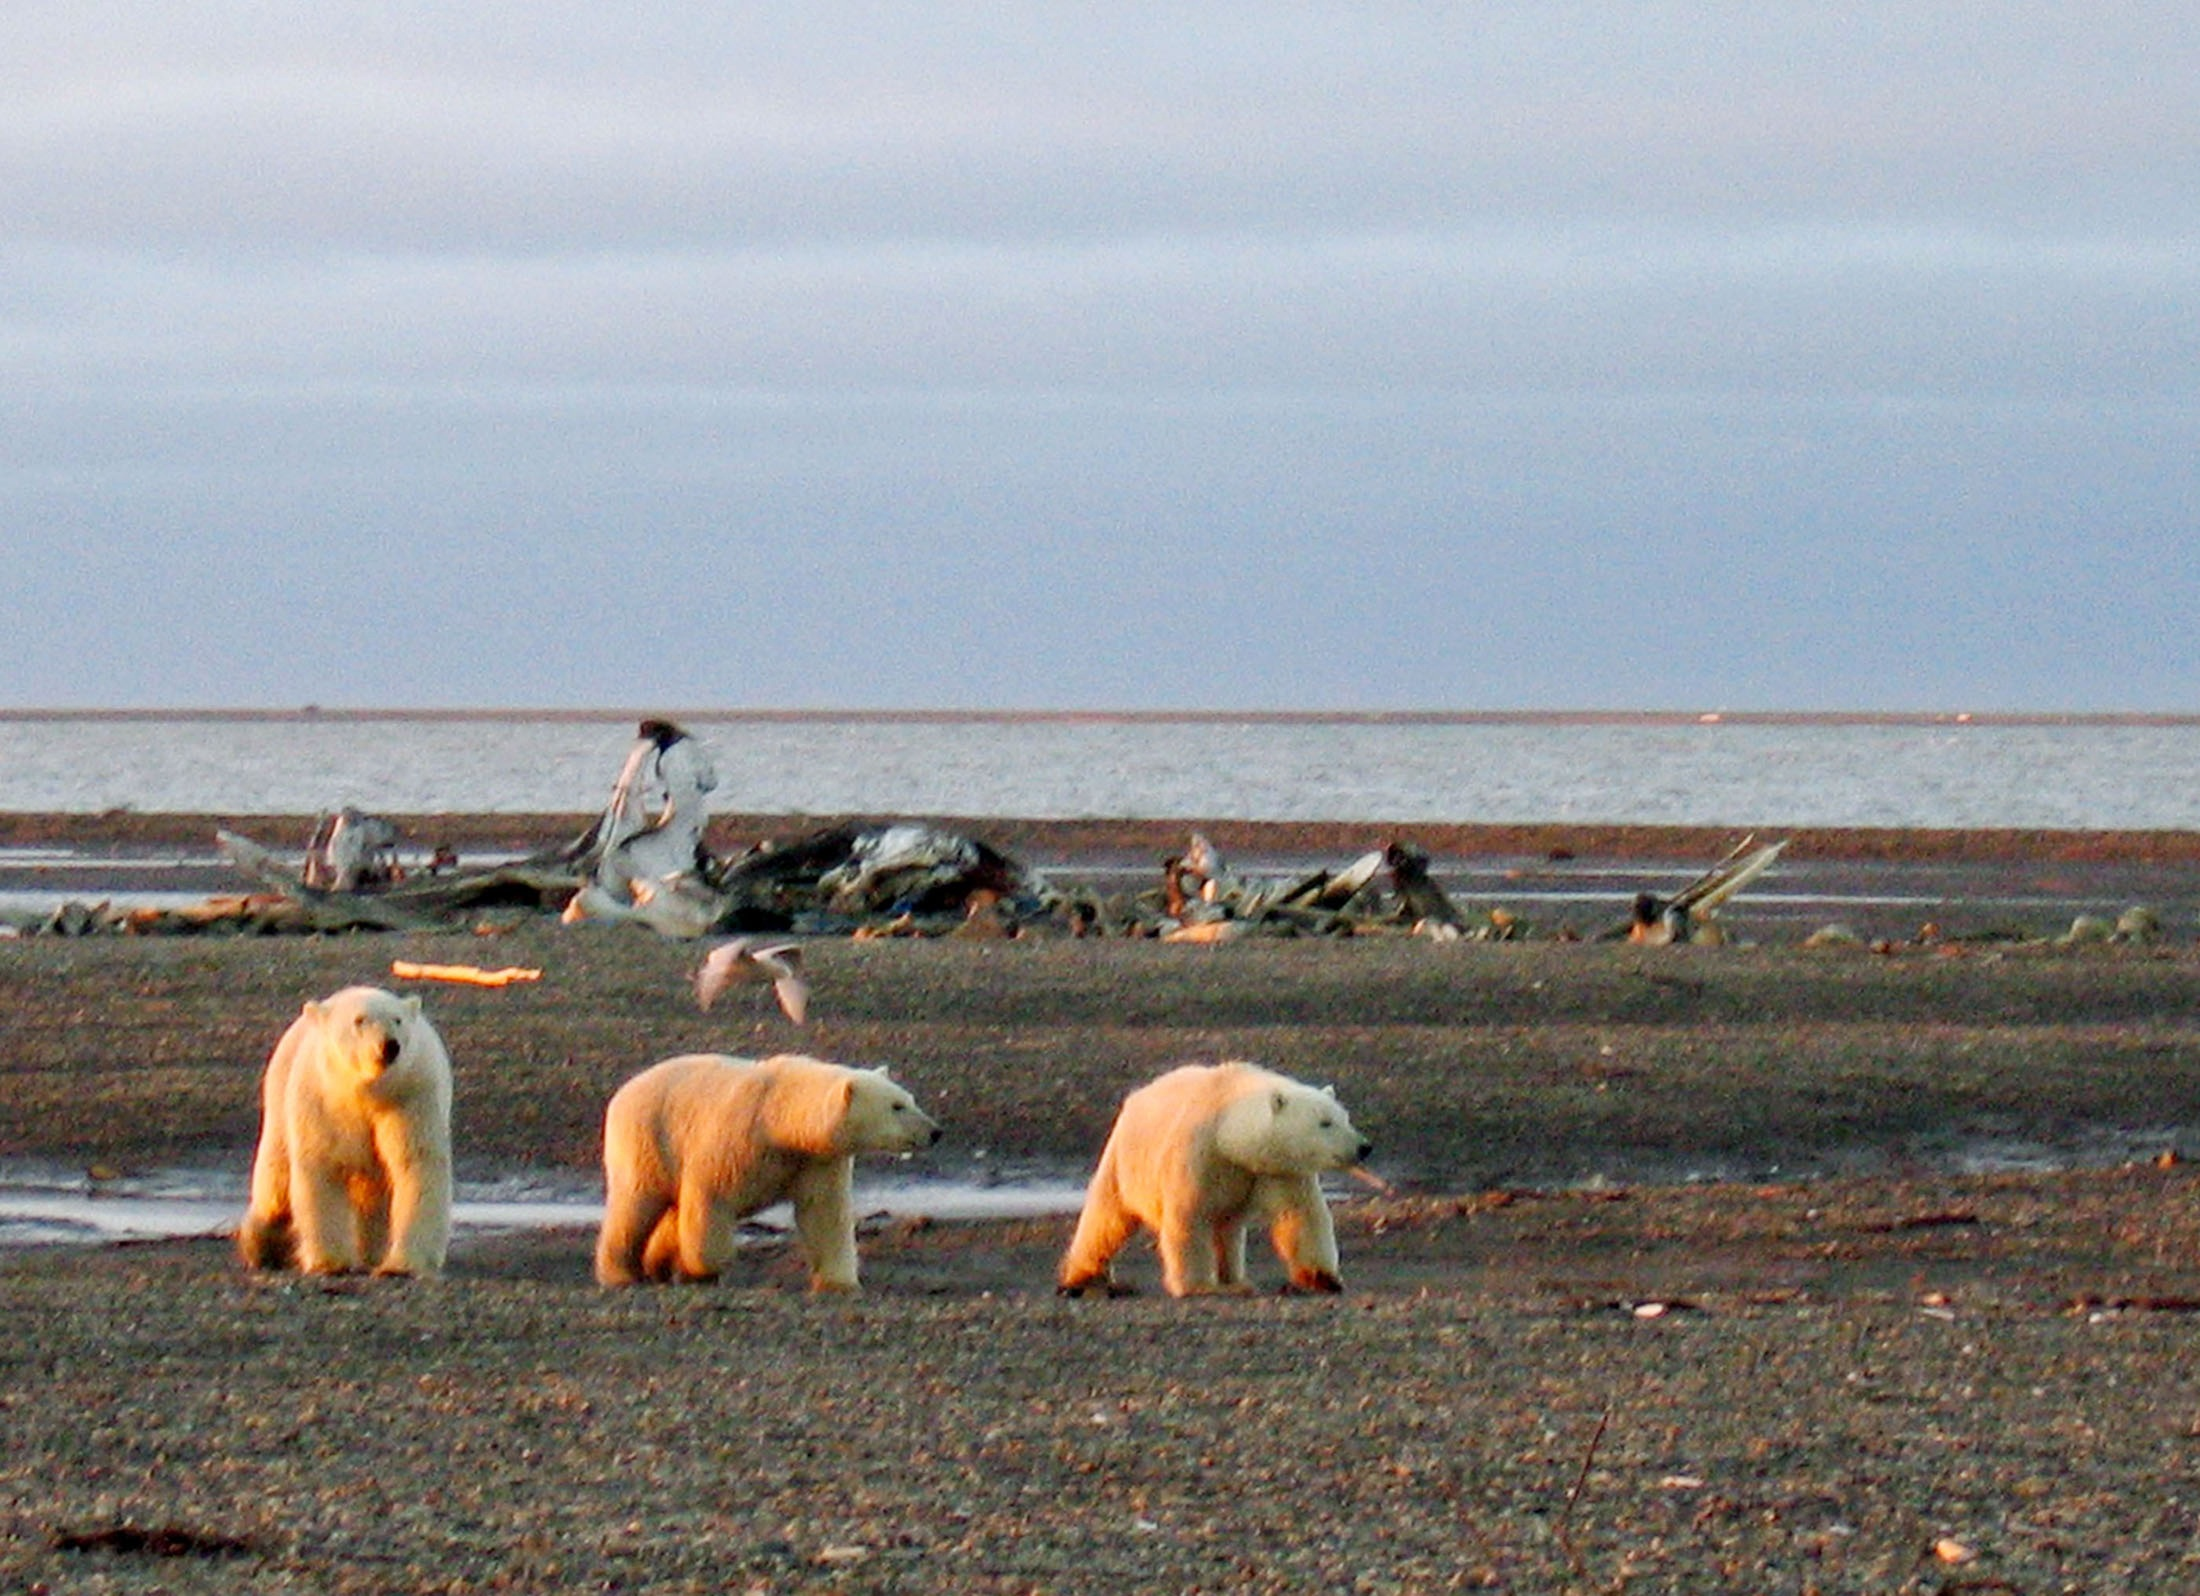 Drilling in the Alaska's Arctic refuge to close the federal deficit? Let's be real